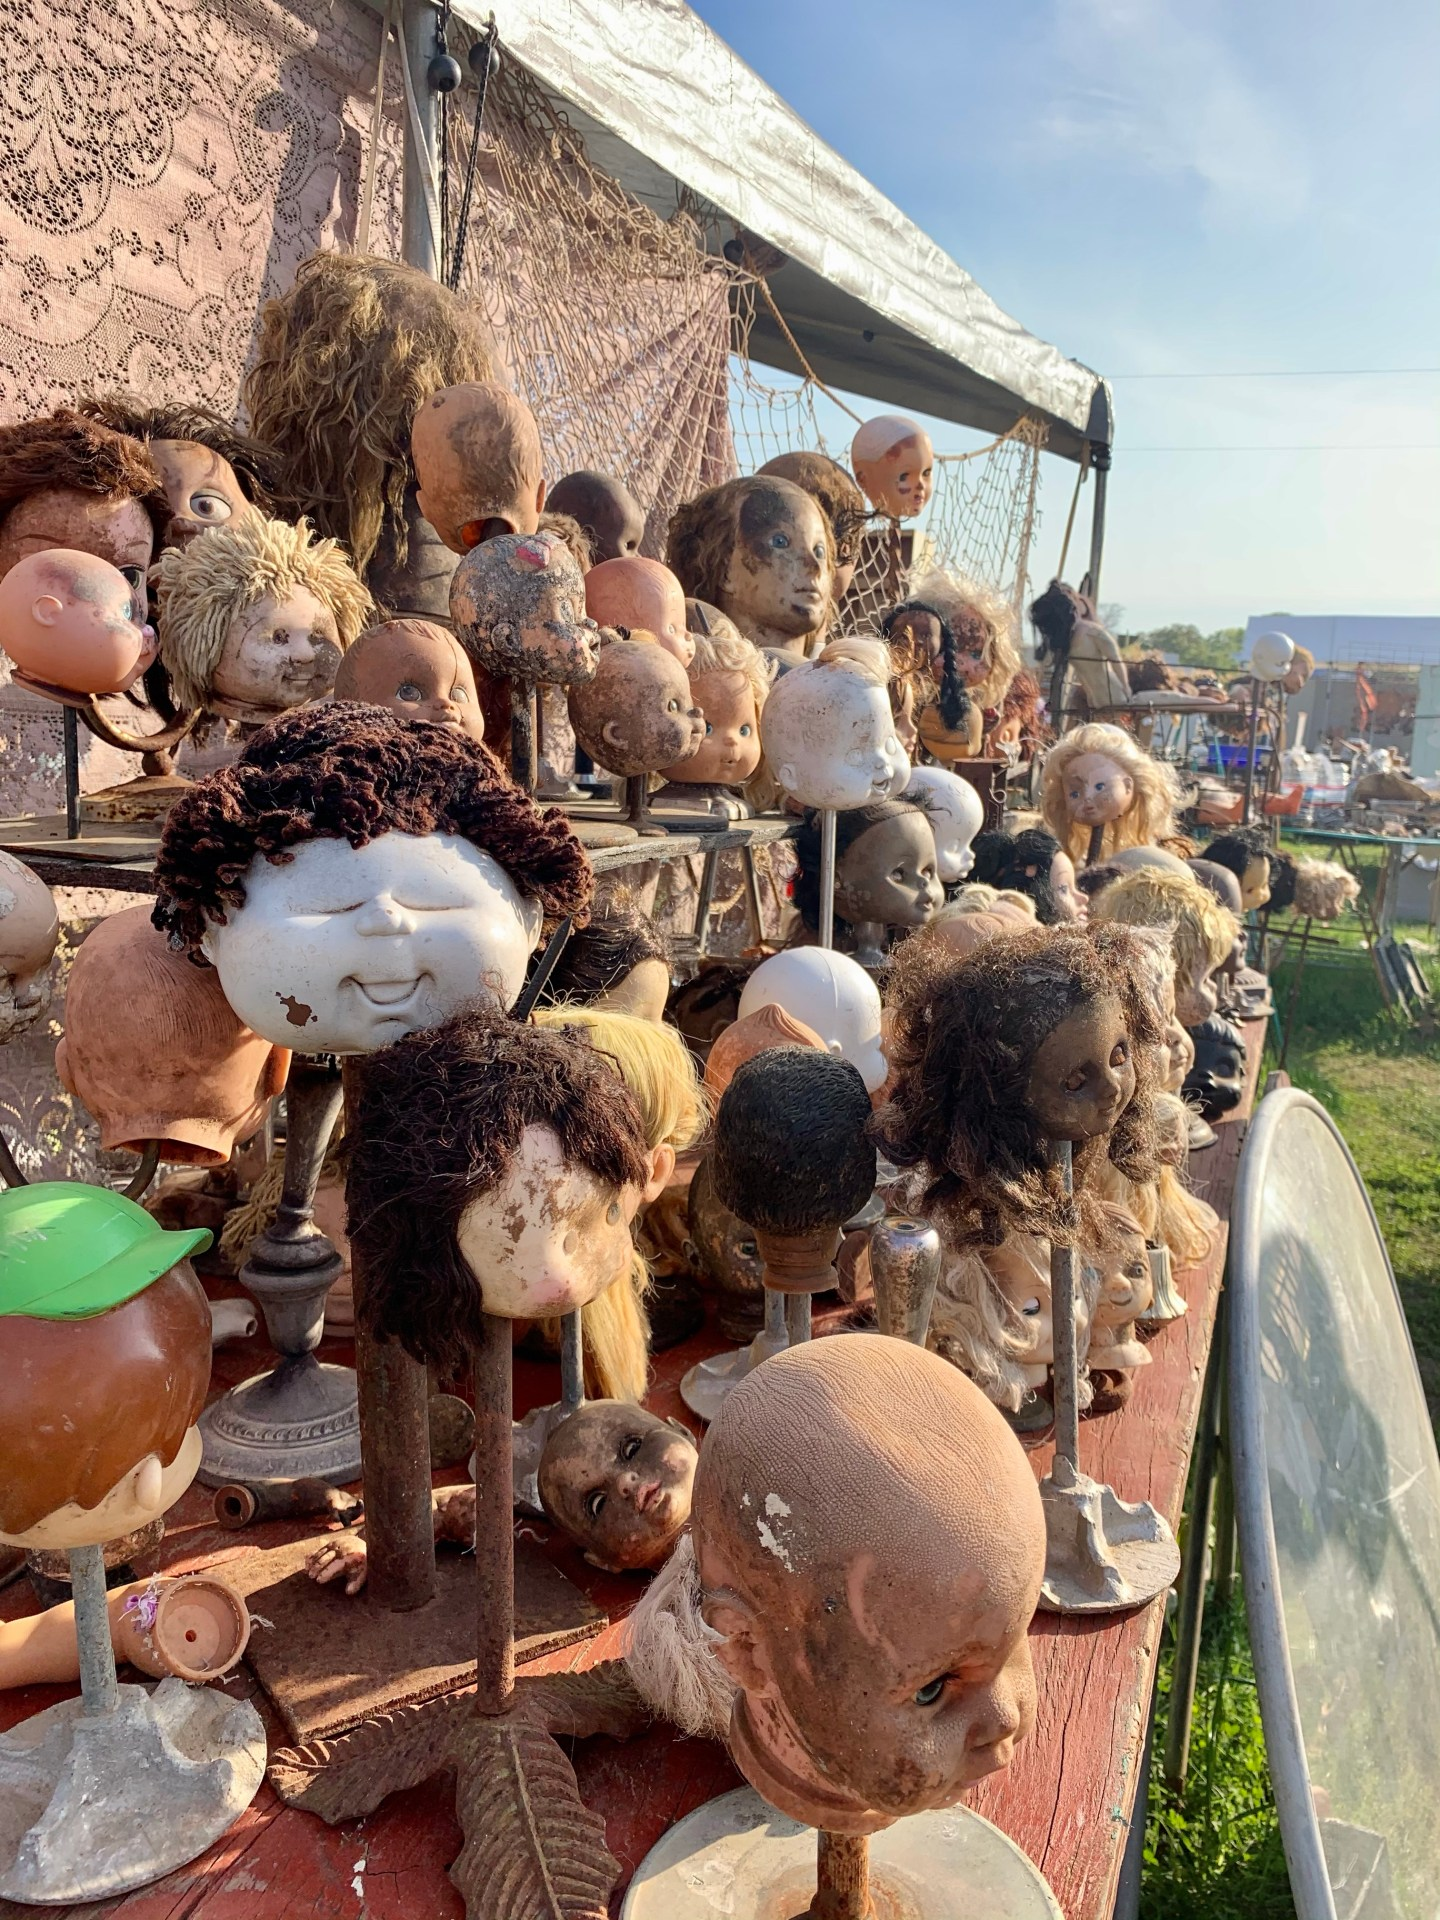 Creepy baby doll heads on sticks at the Round Top Antique Show.